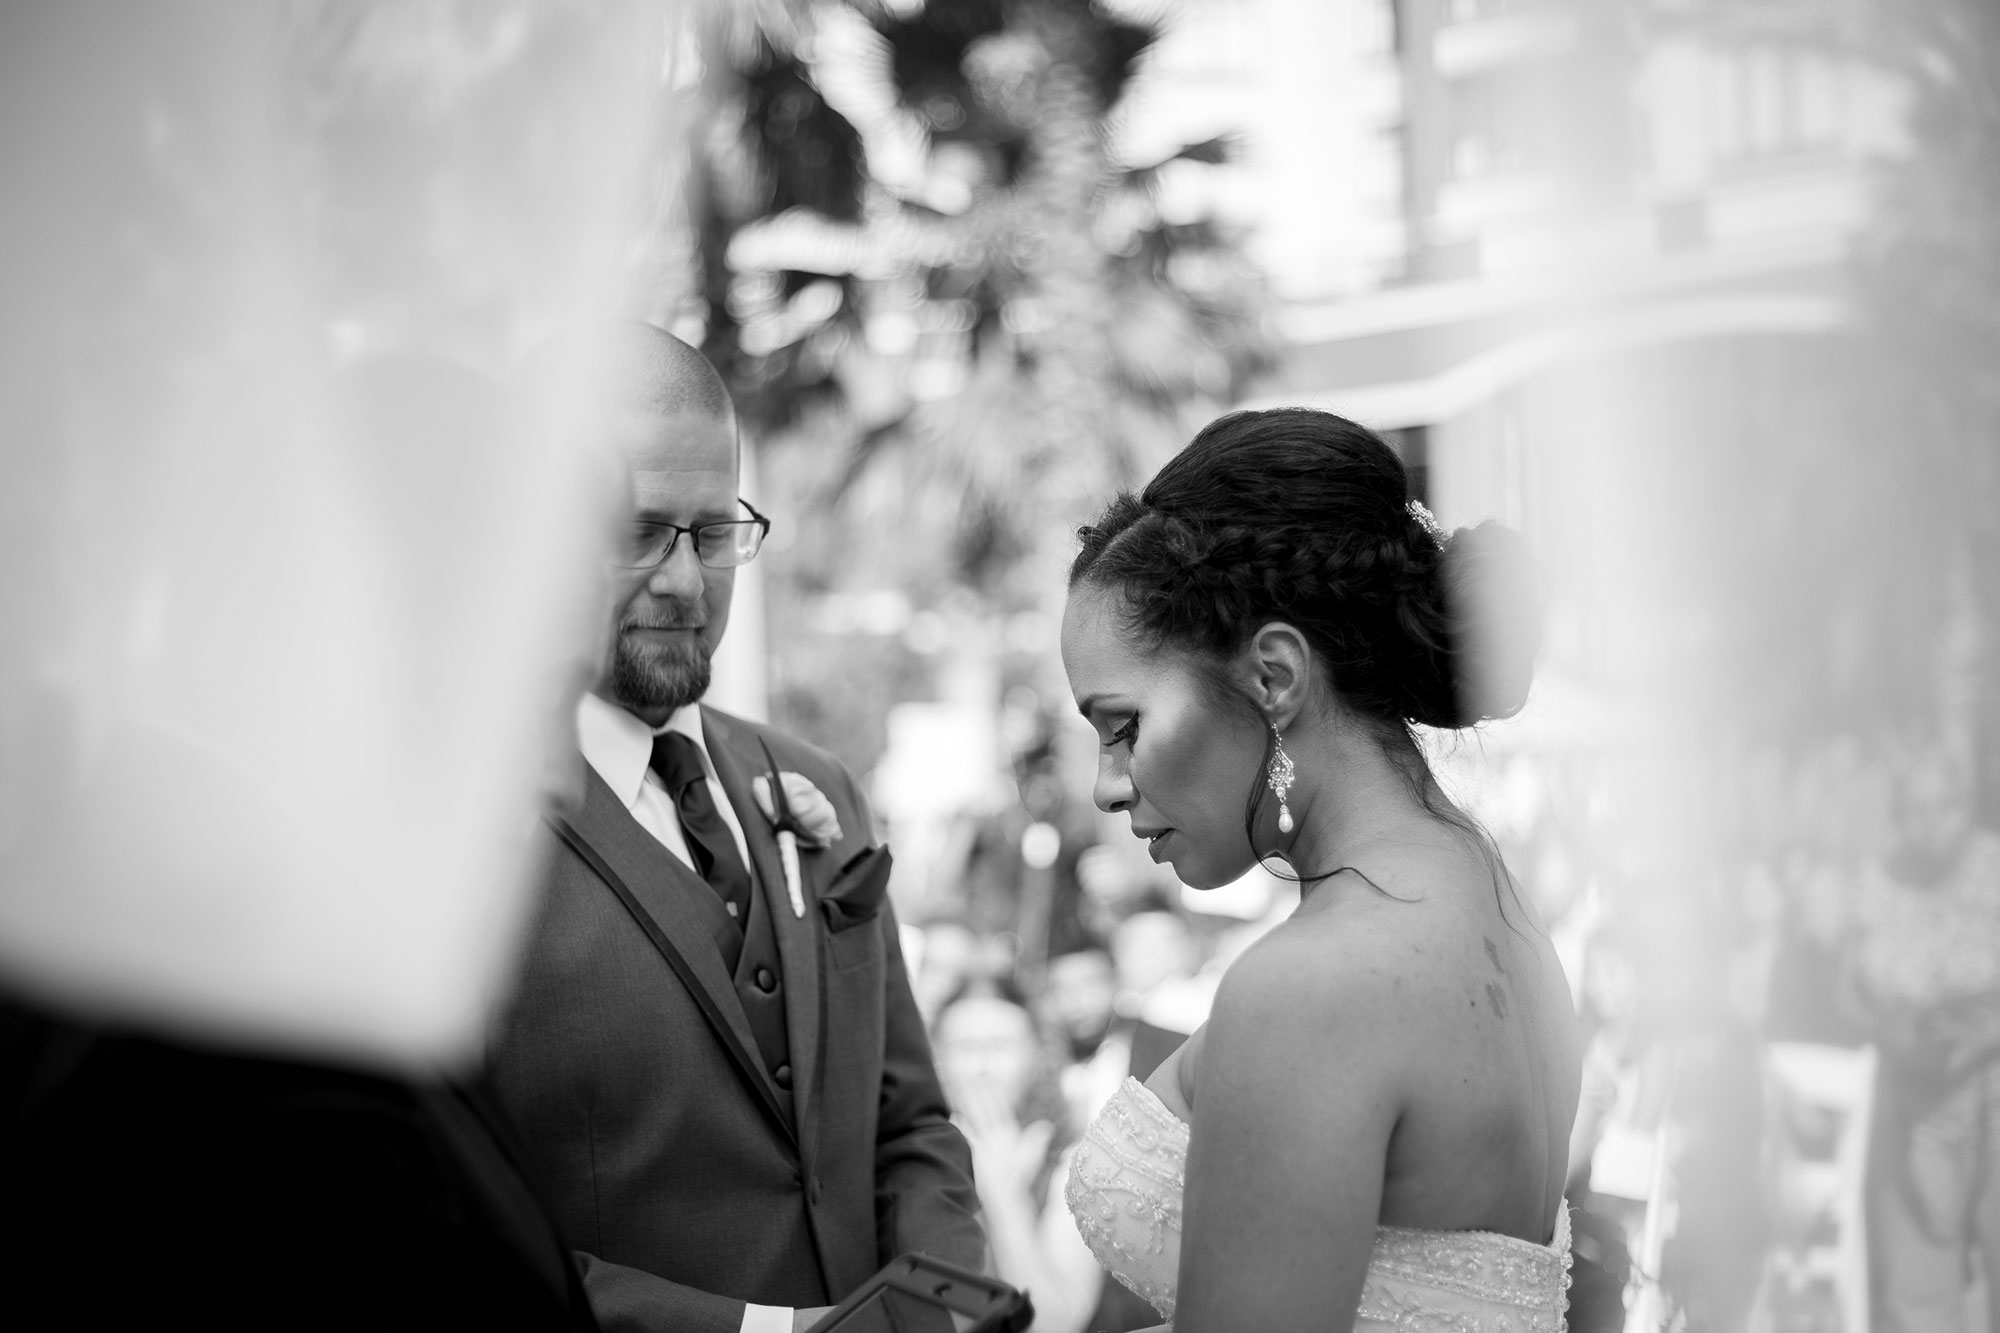 bride and groom sharing their vows at their wedding ceremony shot through the trees los angeles california crystal lily photography